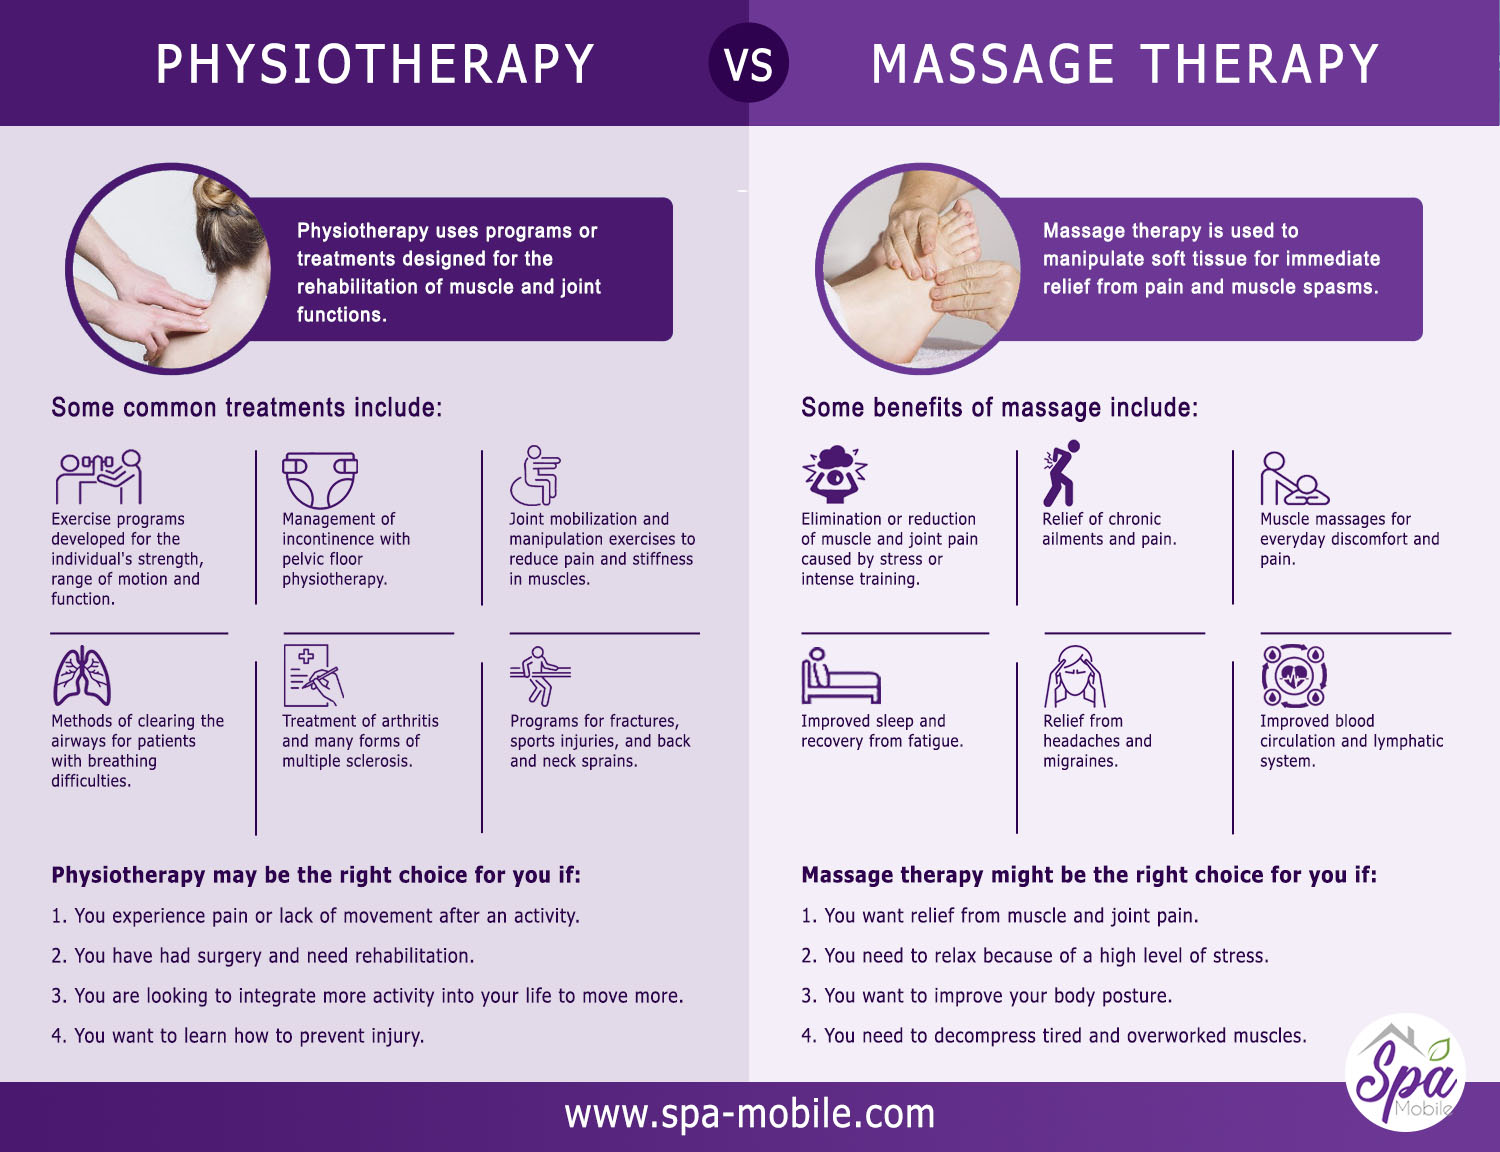 What is the difference between massage therapy and physiotherapy?